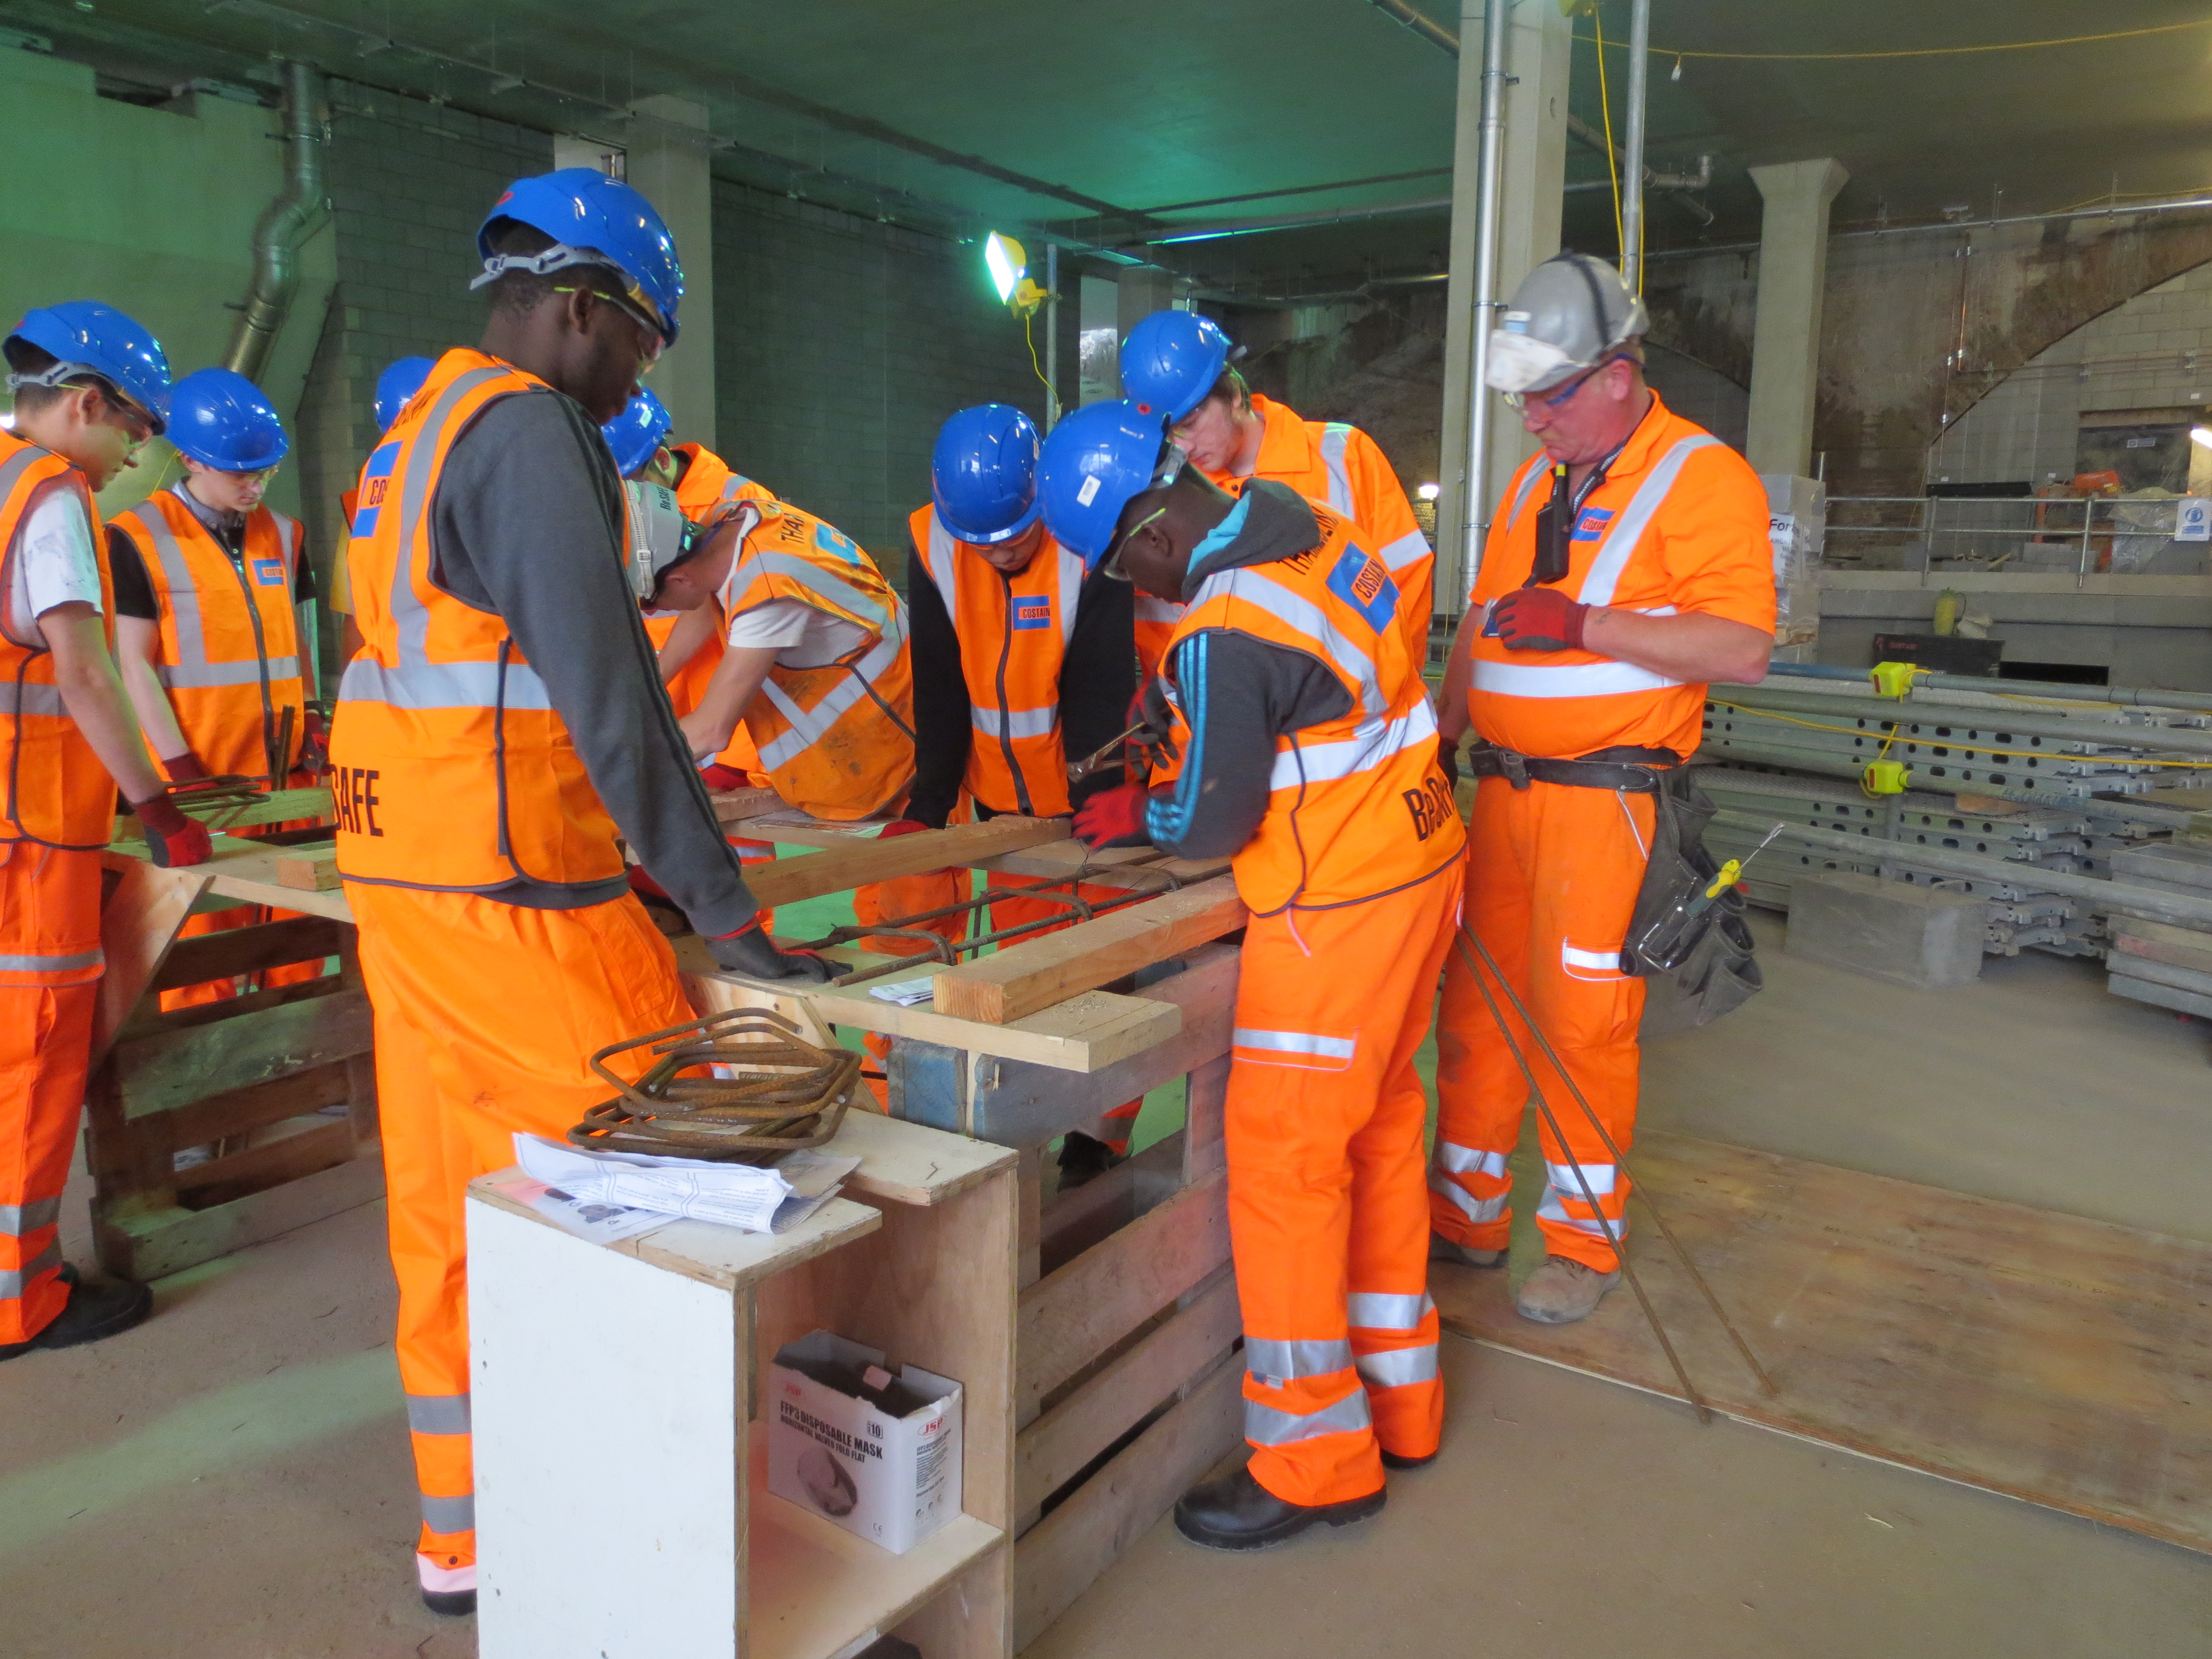 Apprentices at London Bridge Station